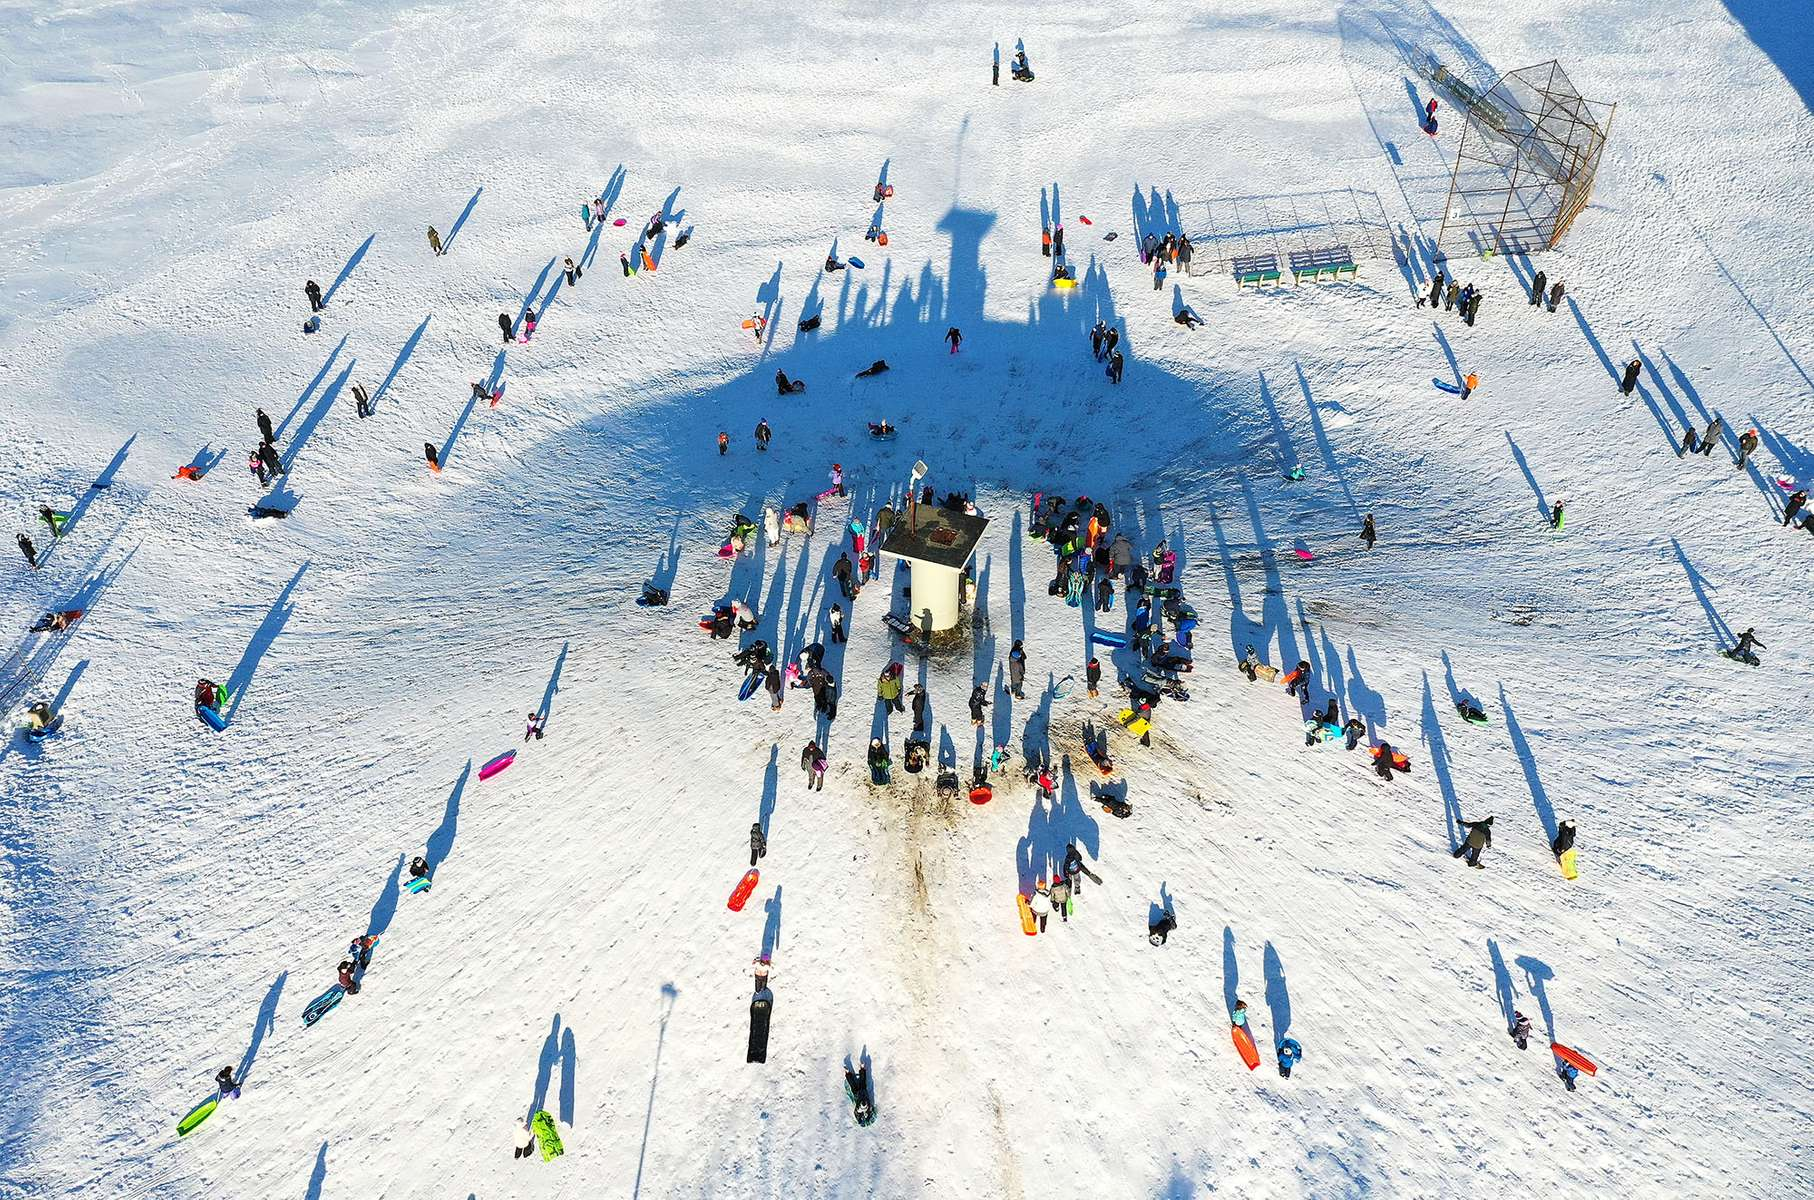 An aerial view of people sledding at Newbridge Road Park on December 17, 2020 in Merrick, New York. Many parts of the Northeast were hit with heavy snowfall in the first big storm of the season.